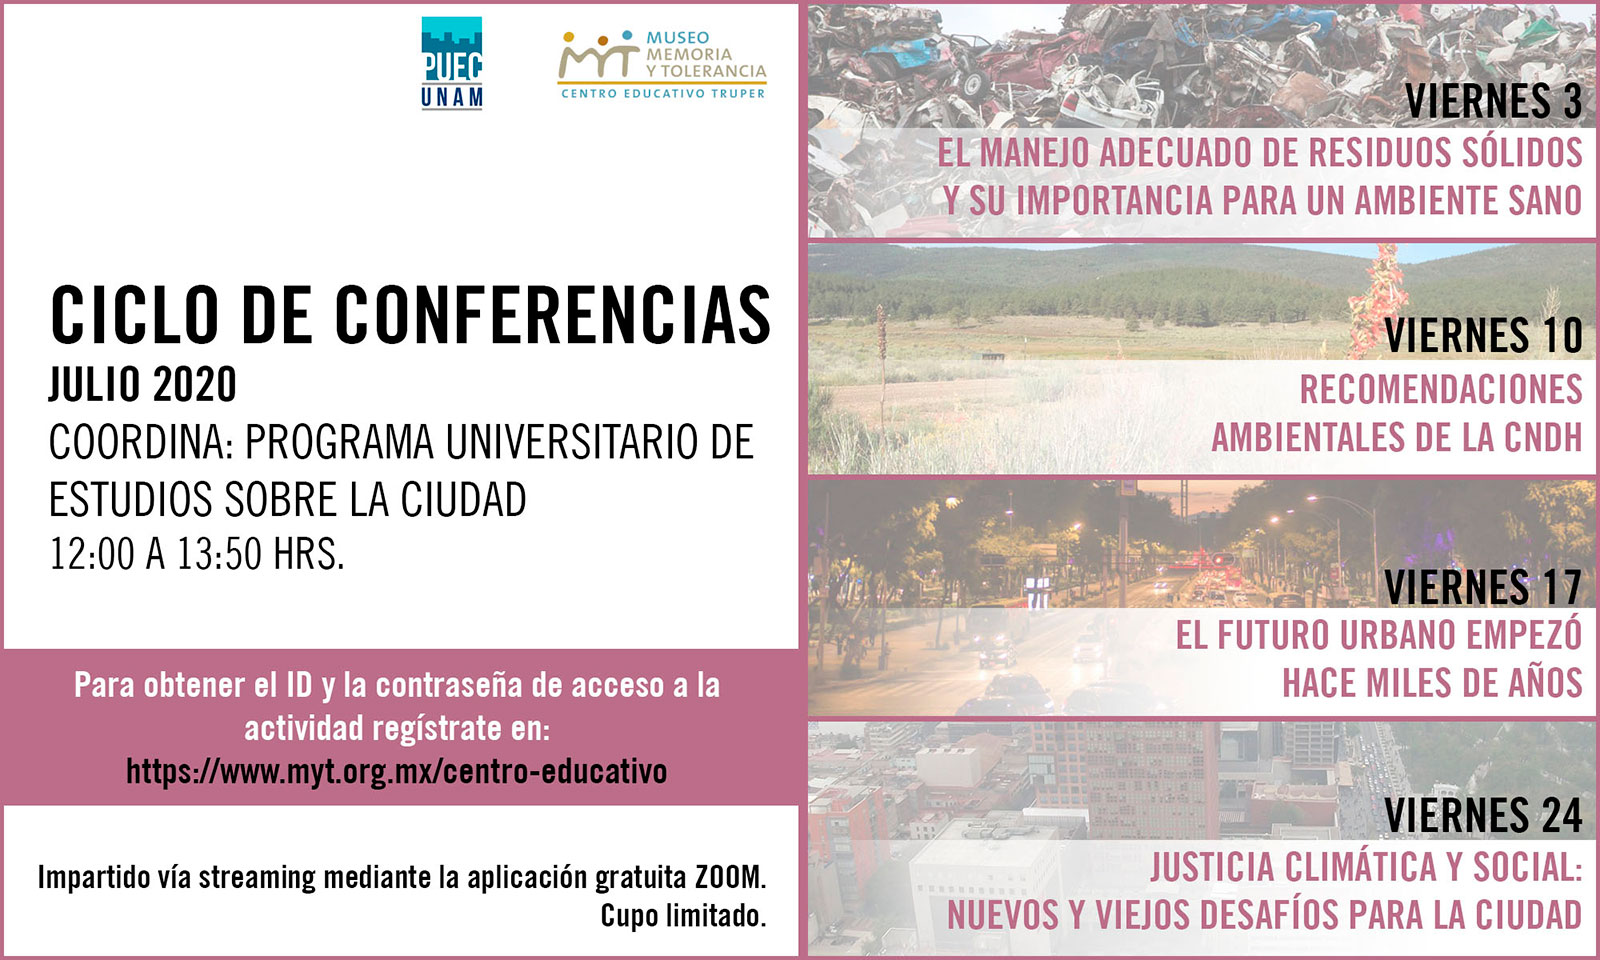 Ciclo de conferencias Museo Memoria y Tolerancia